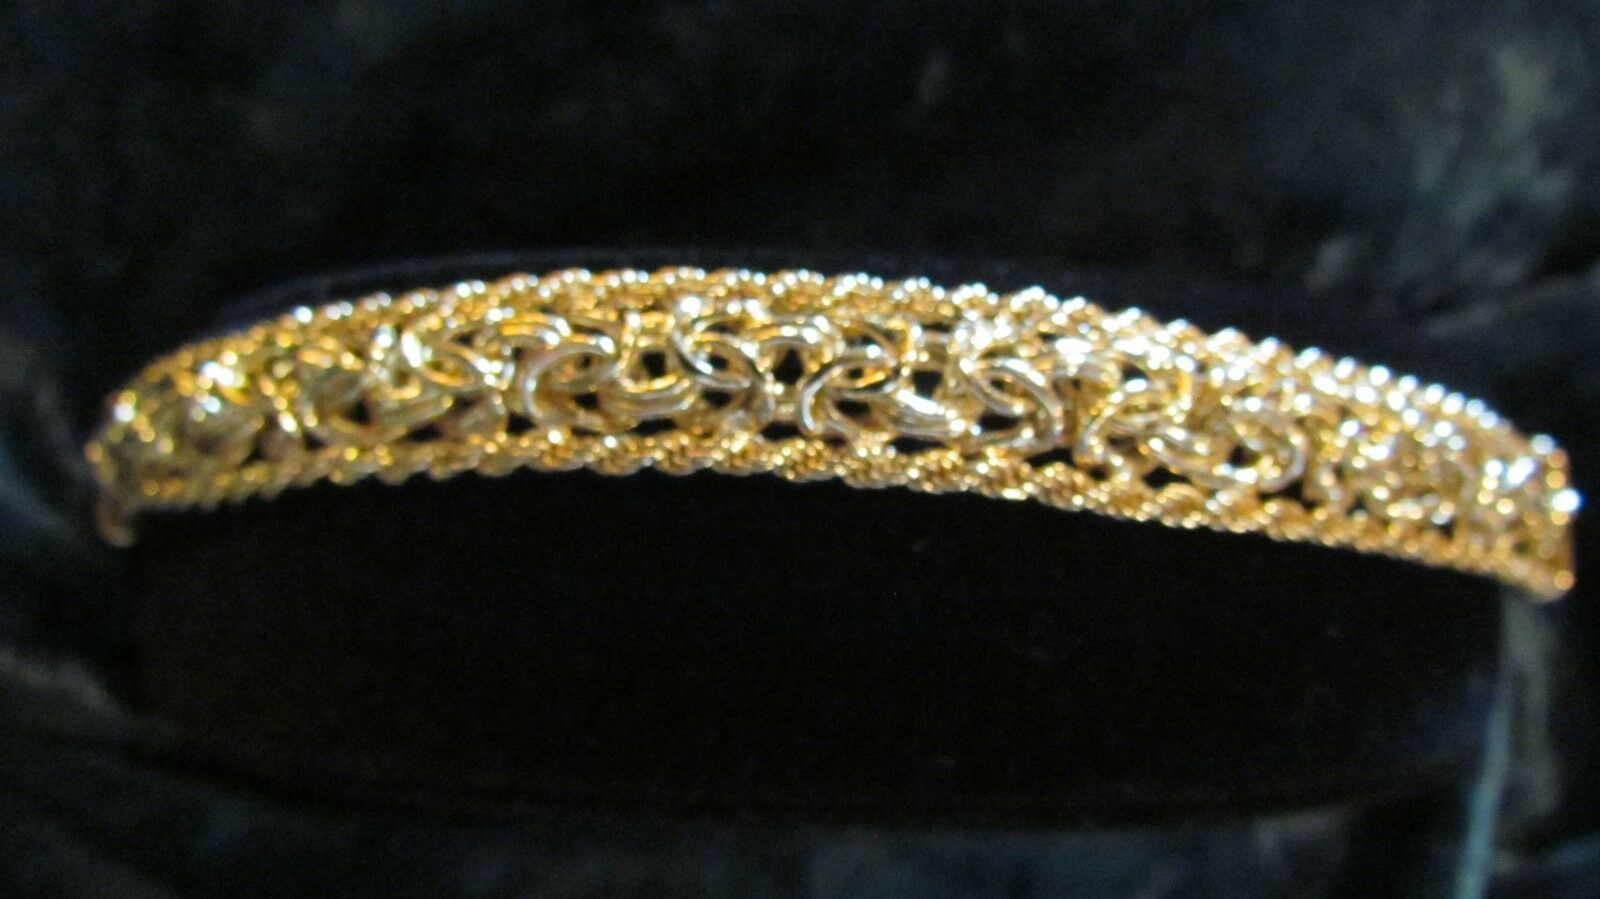 HSN Technibond Rope Trim Byzantine (gold Over Sterling) 7